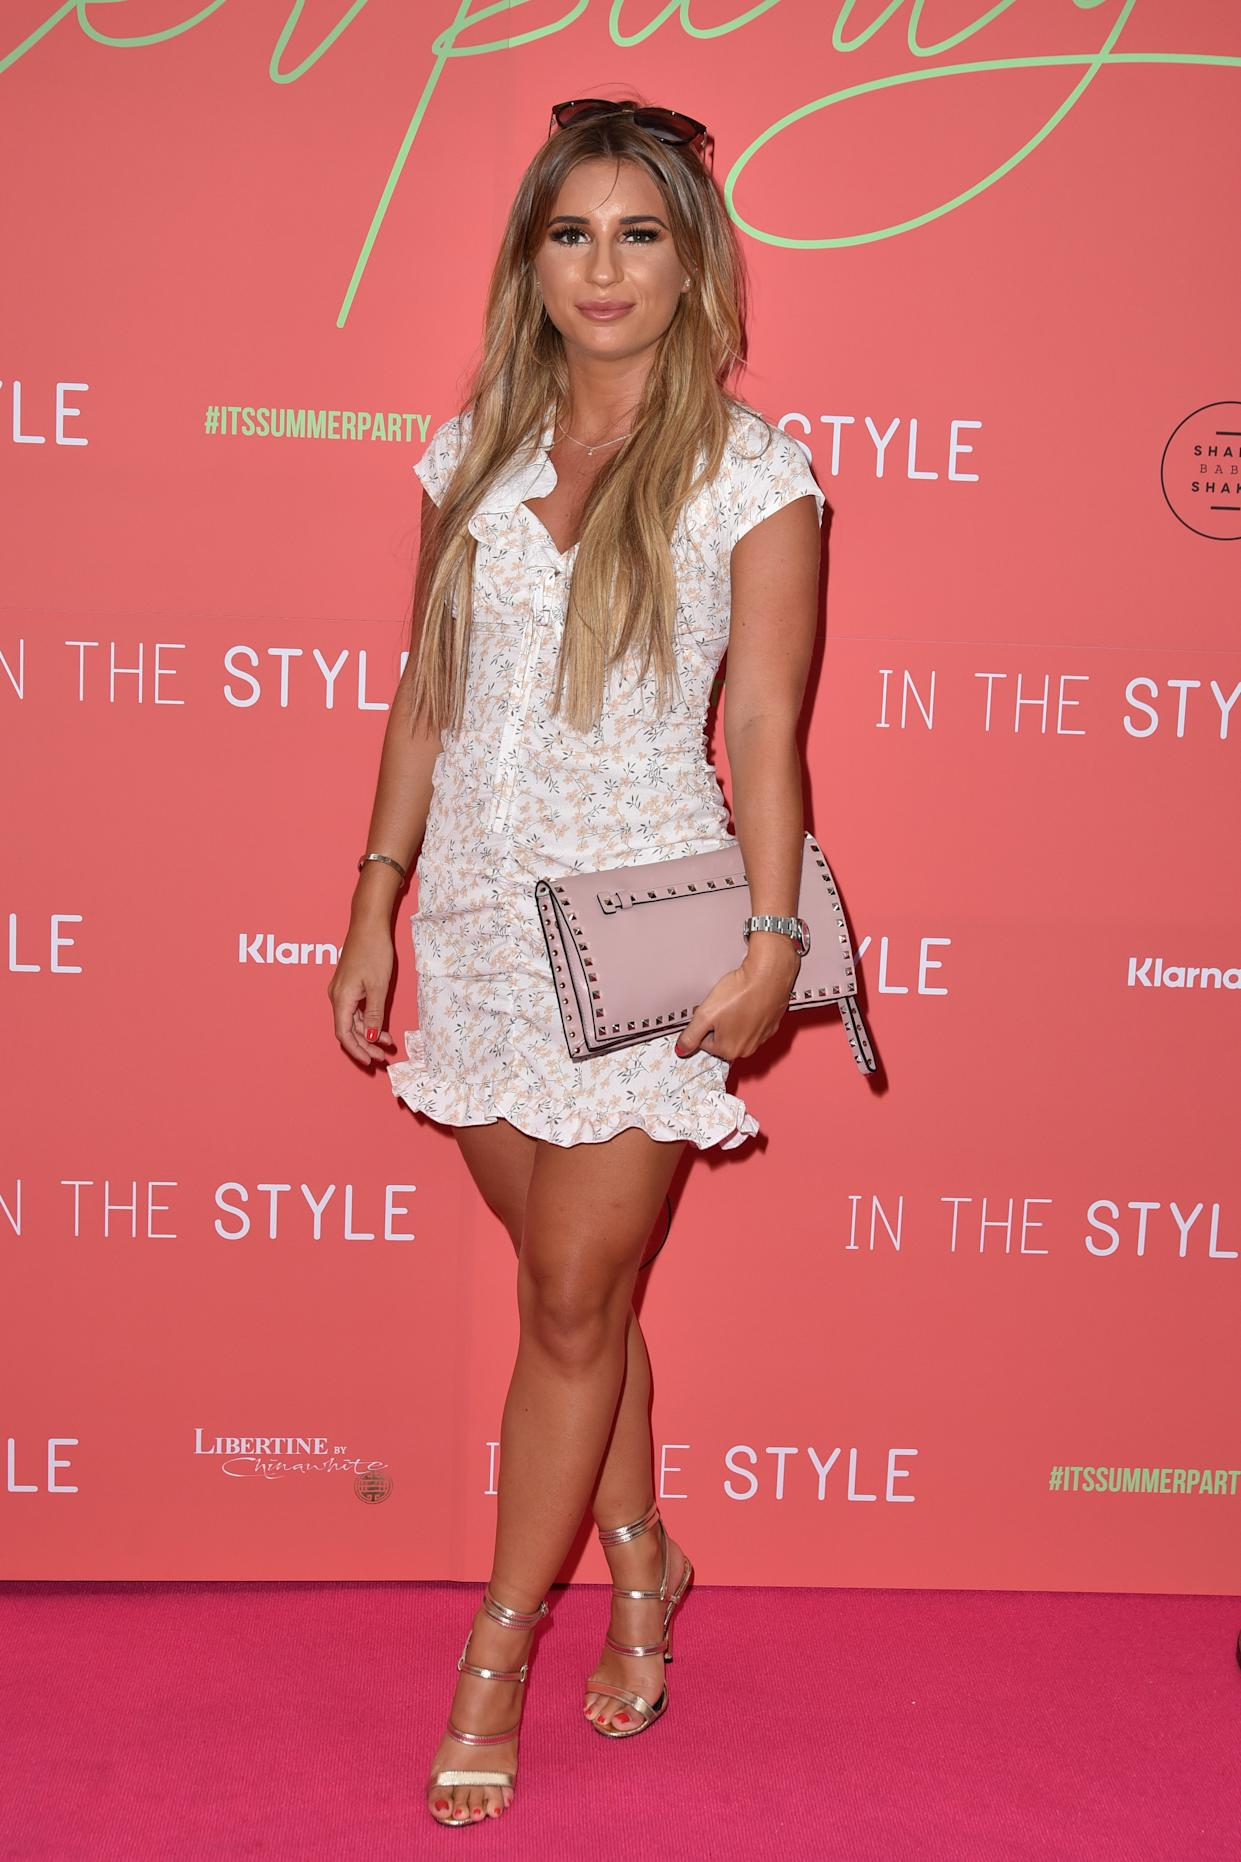 Dani Dyer attends the 'In The Style' Summer Party at Libertine in London, England. (Photo by James Warren / SOPA Images/Sipa USA)